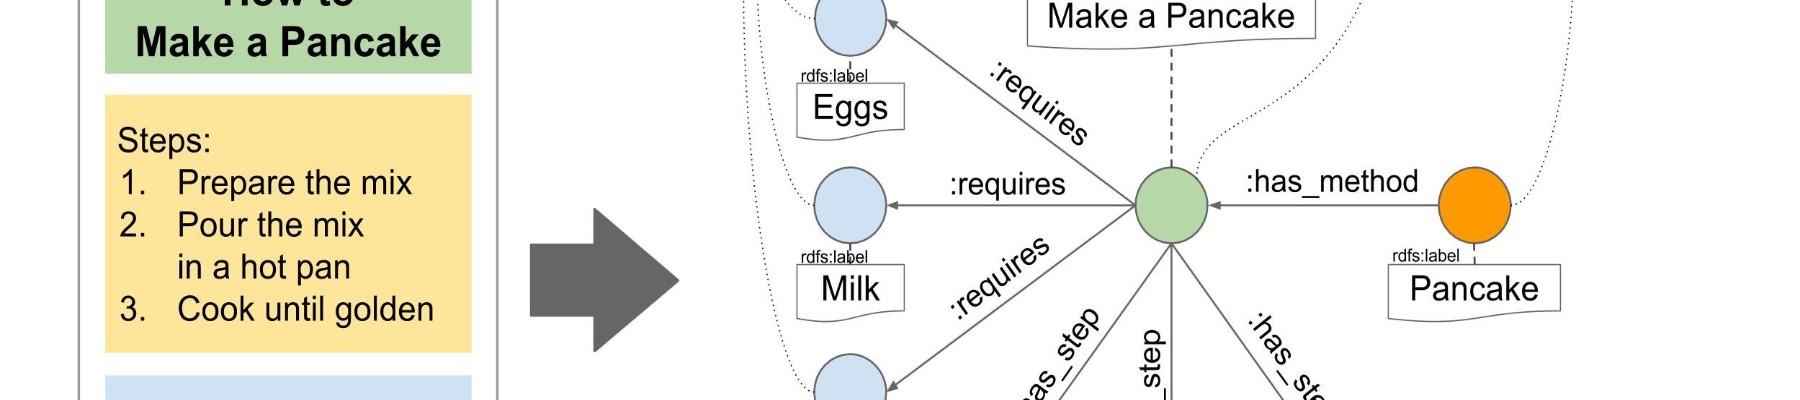 Human Instructions - Multilingual (wikiHow) | Kaggle